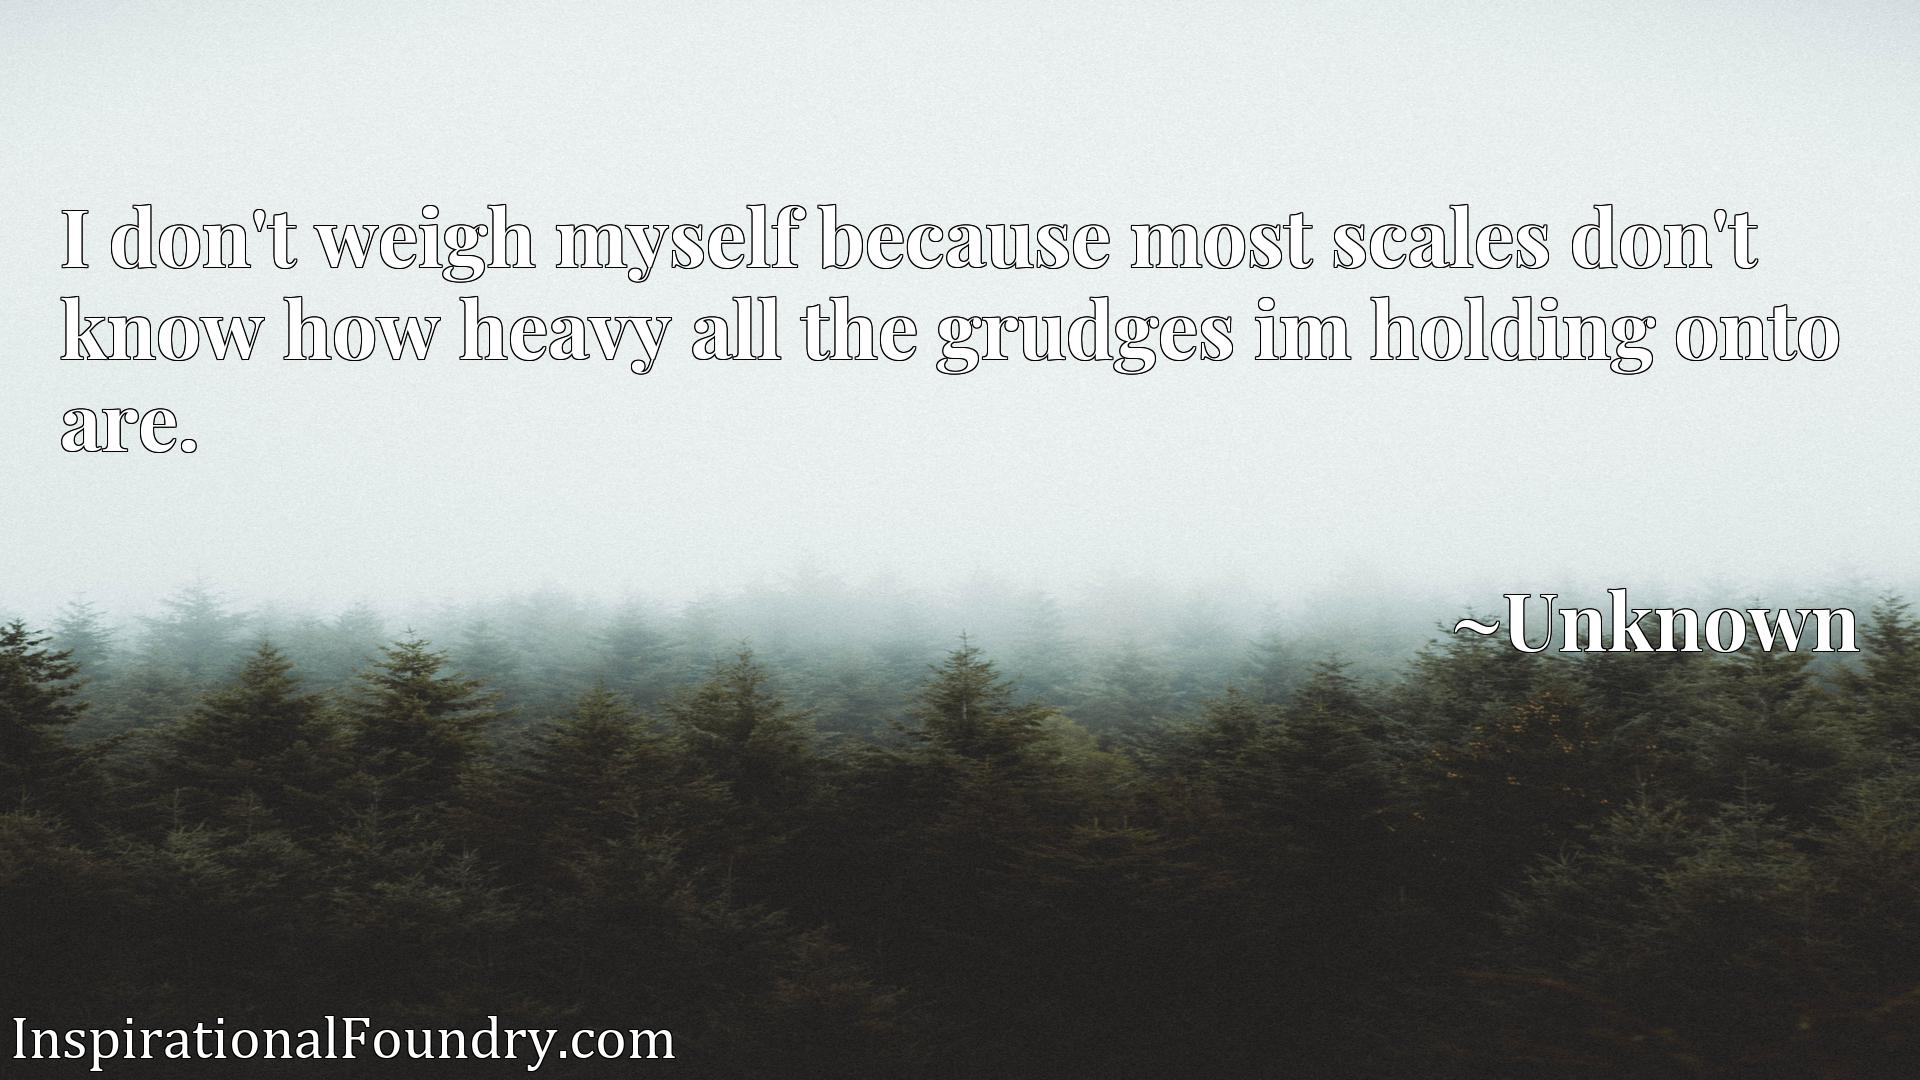 I don't weigh myself because most scales don't know how heavy all the grudges im holding onto are.